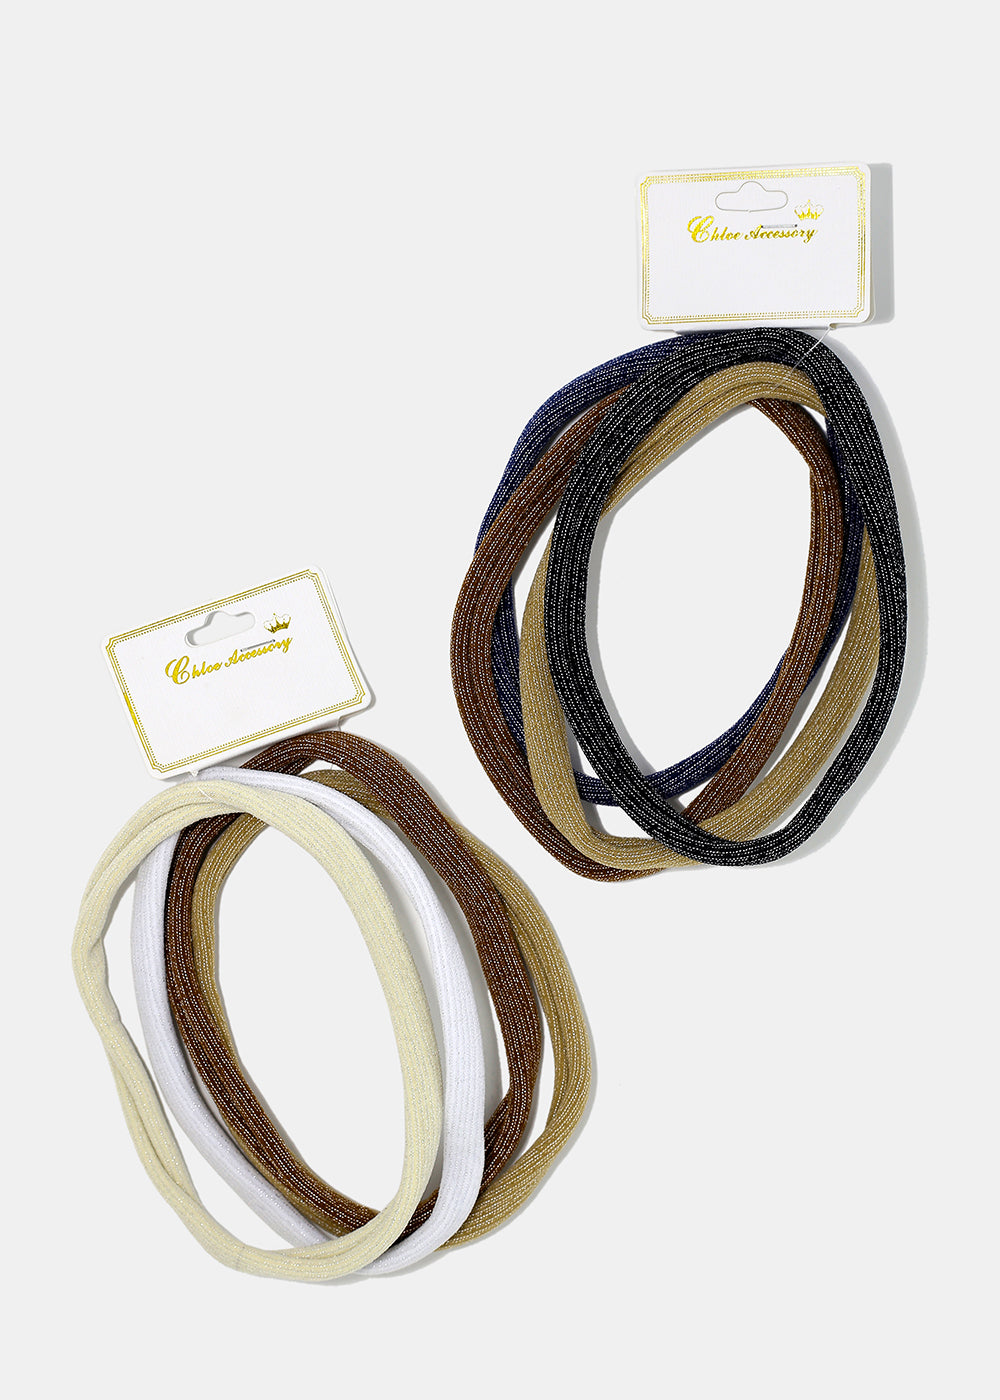 4-Piece Long Neutral Hair Ties